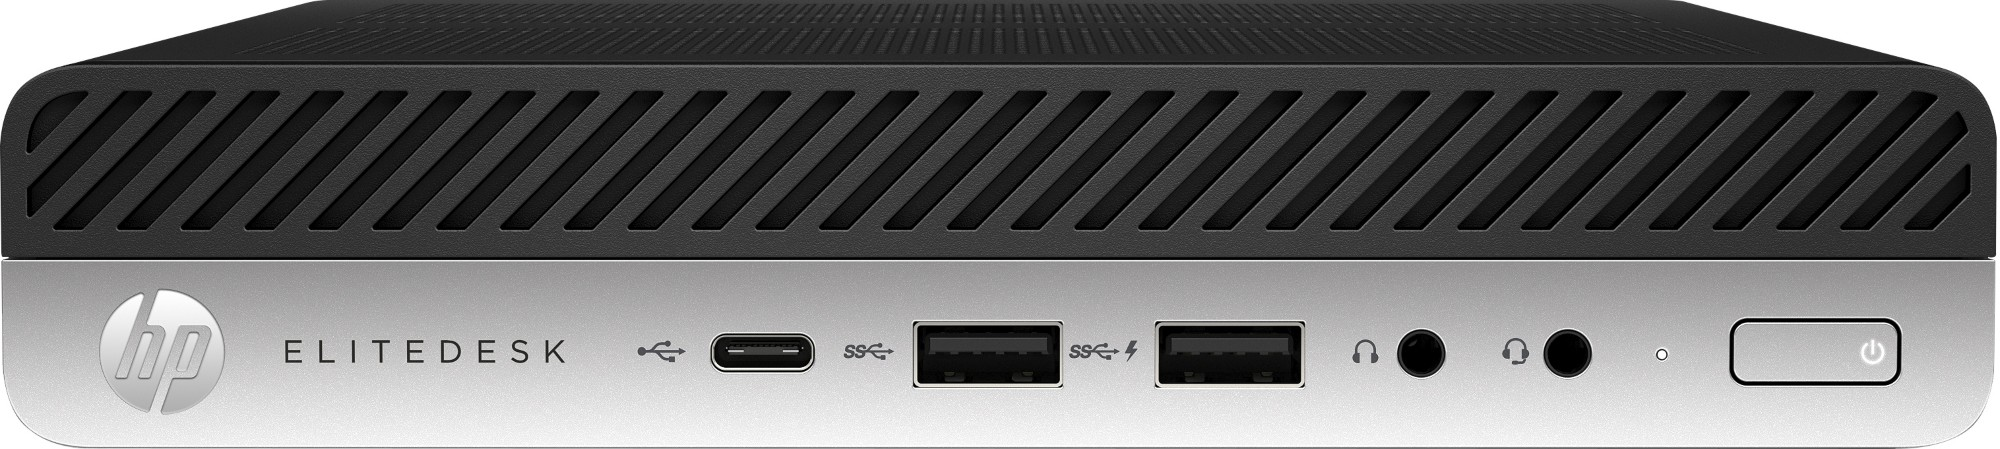 HP EliteDesk 800 65W G3 Desktop Mini PC